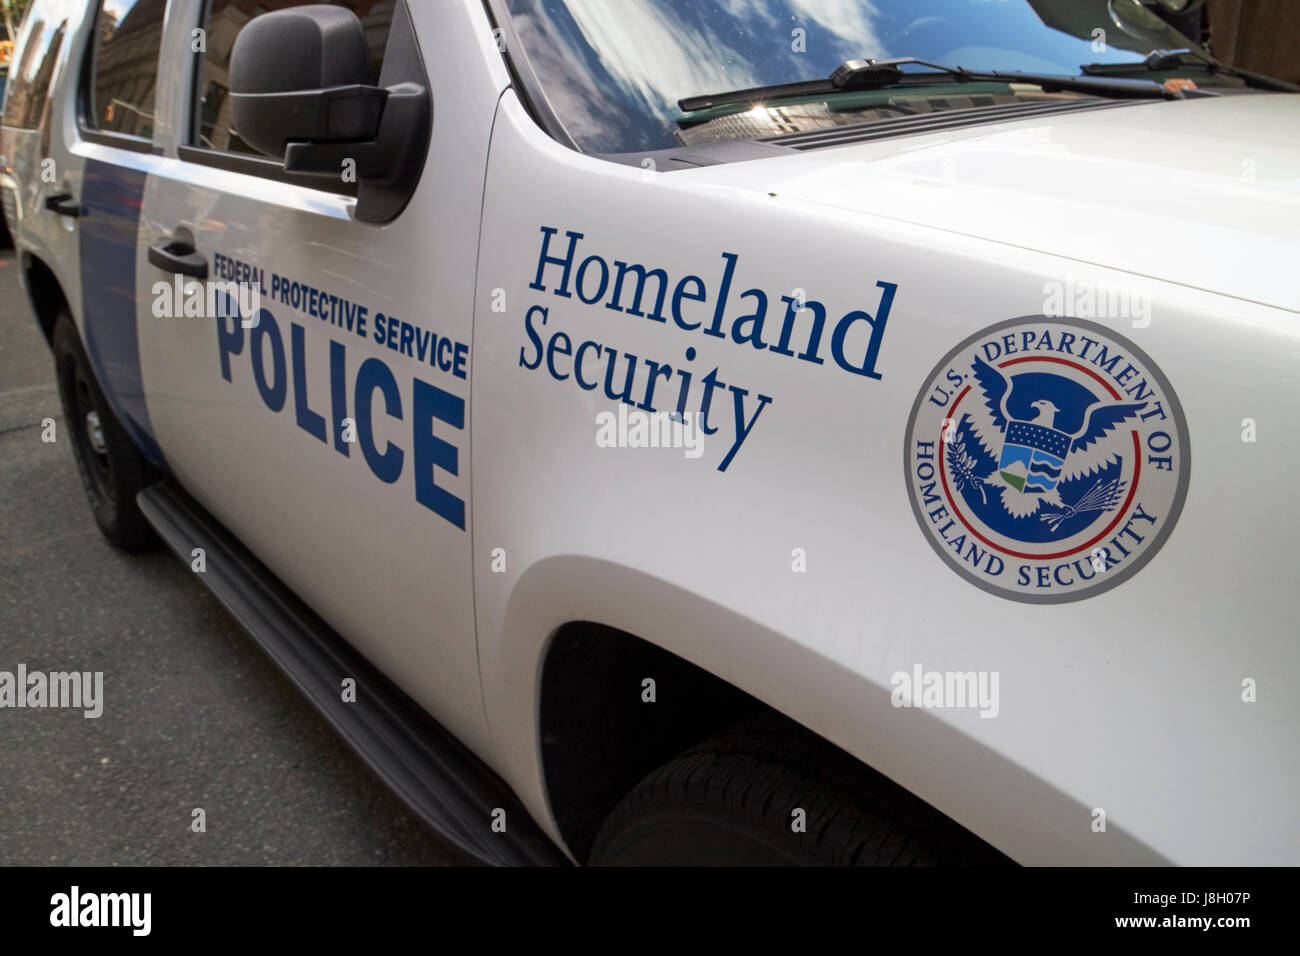 department of homeland security federal protective service vehicle with logo New York City USA - Stock Image